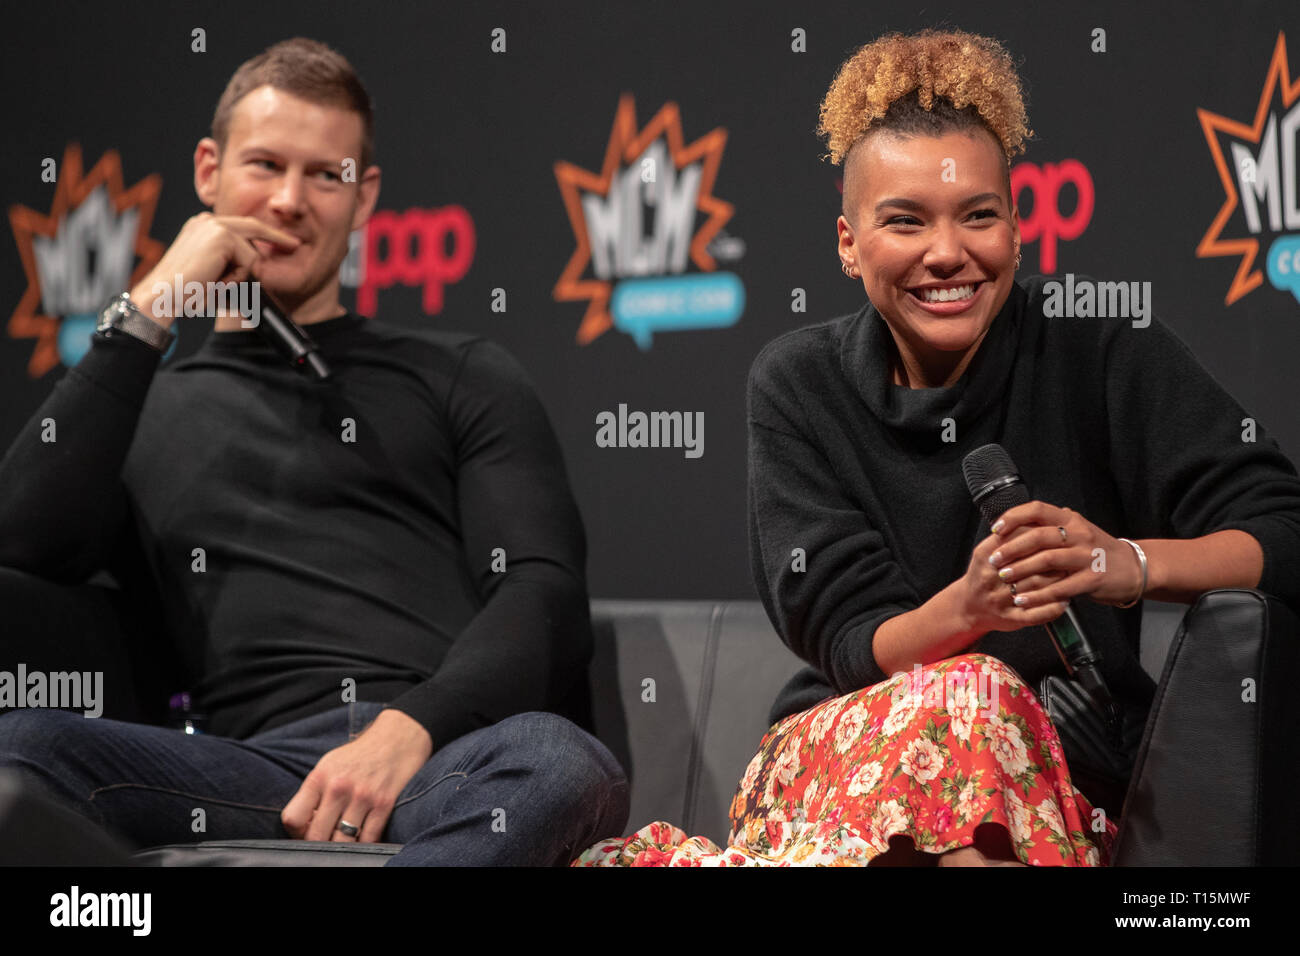 Birmingham, UK. Saturday 23 March 2019. Tom Hopper (L) and Emmy Raver-Lampman (R) discussing the netflix smash hit The Umbrella Academy on the 1st day of the MCM Comic Con Birmingham at the NEC  , © Jason Richardson / Alamy Live News - Stock Image